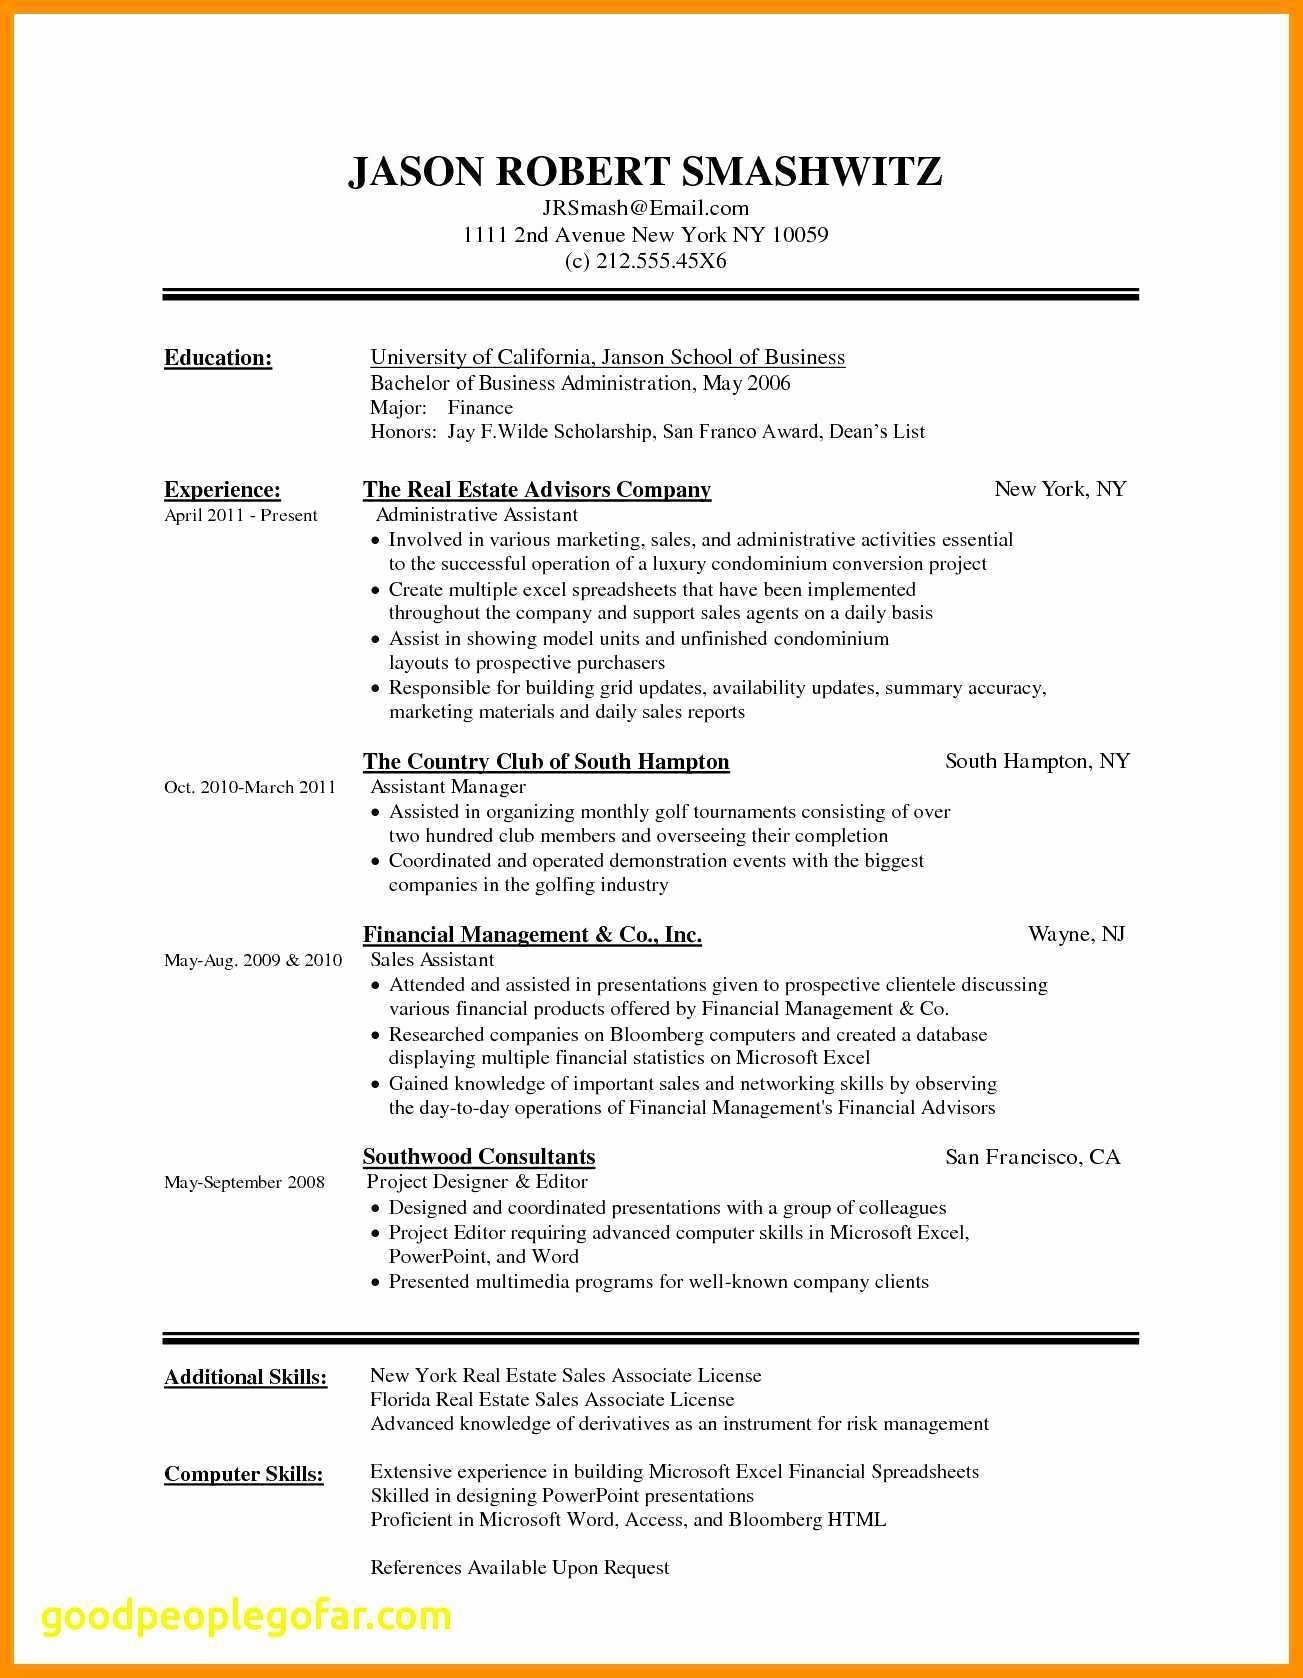 Free Resume Word Templates - 16 Fresh Free Resume Templates Microsoft